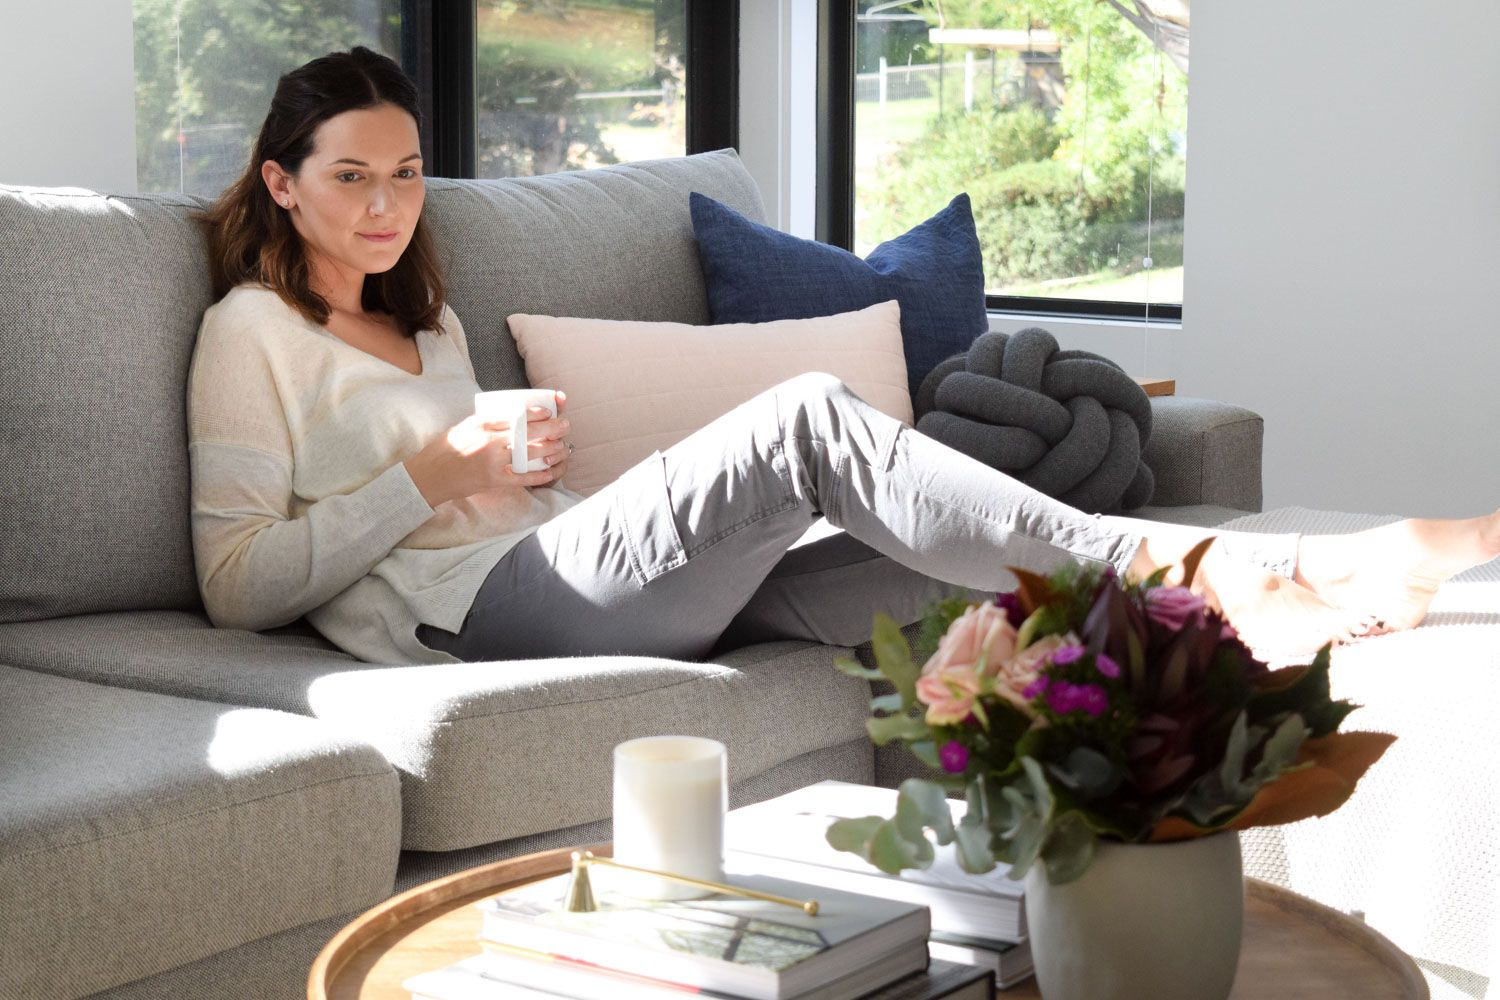 At home with Style Curator sharing her coffee table styling tips and tricks!